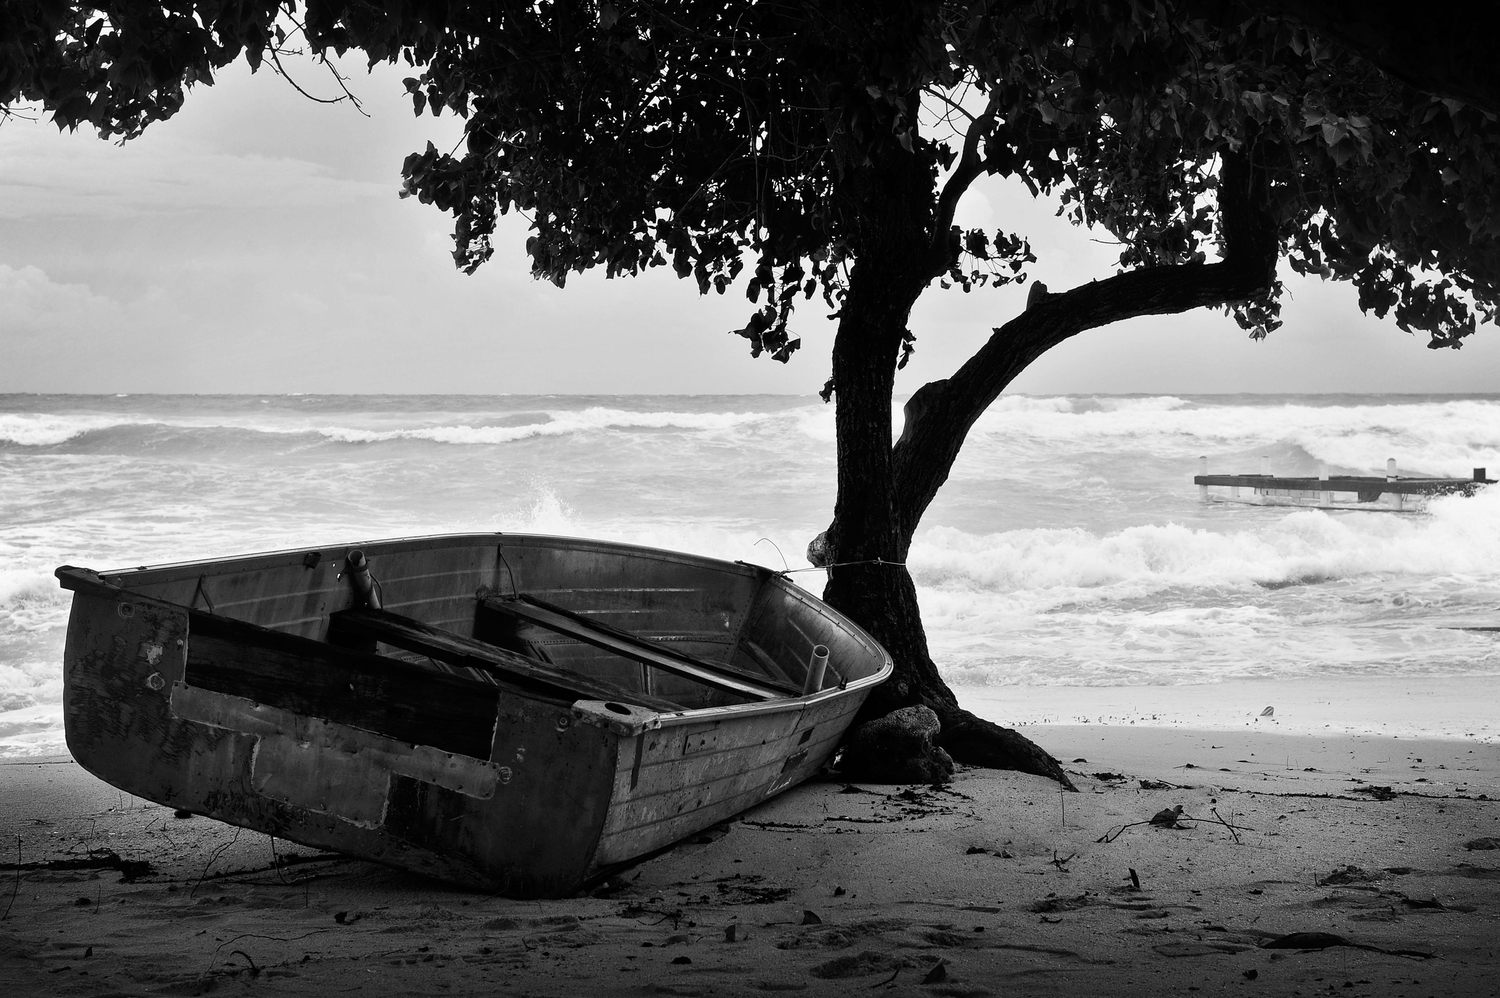 Small boat on the beach in a storm